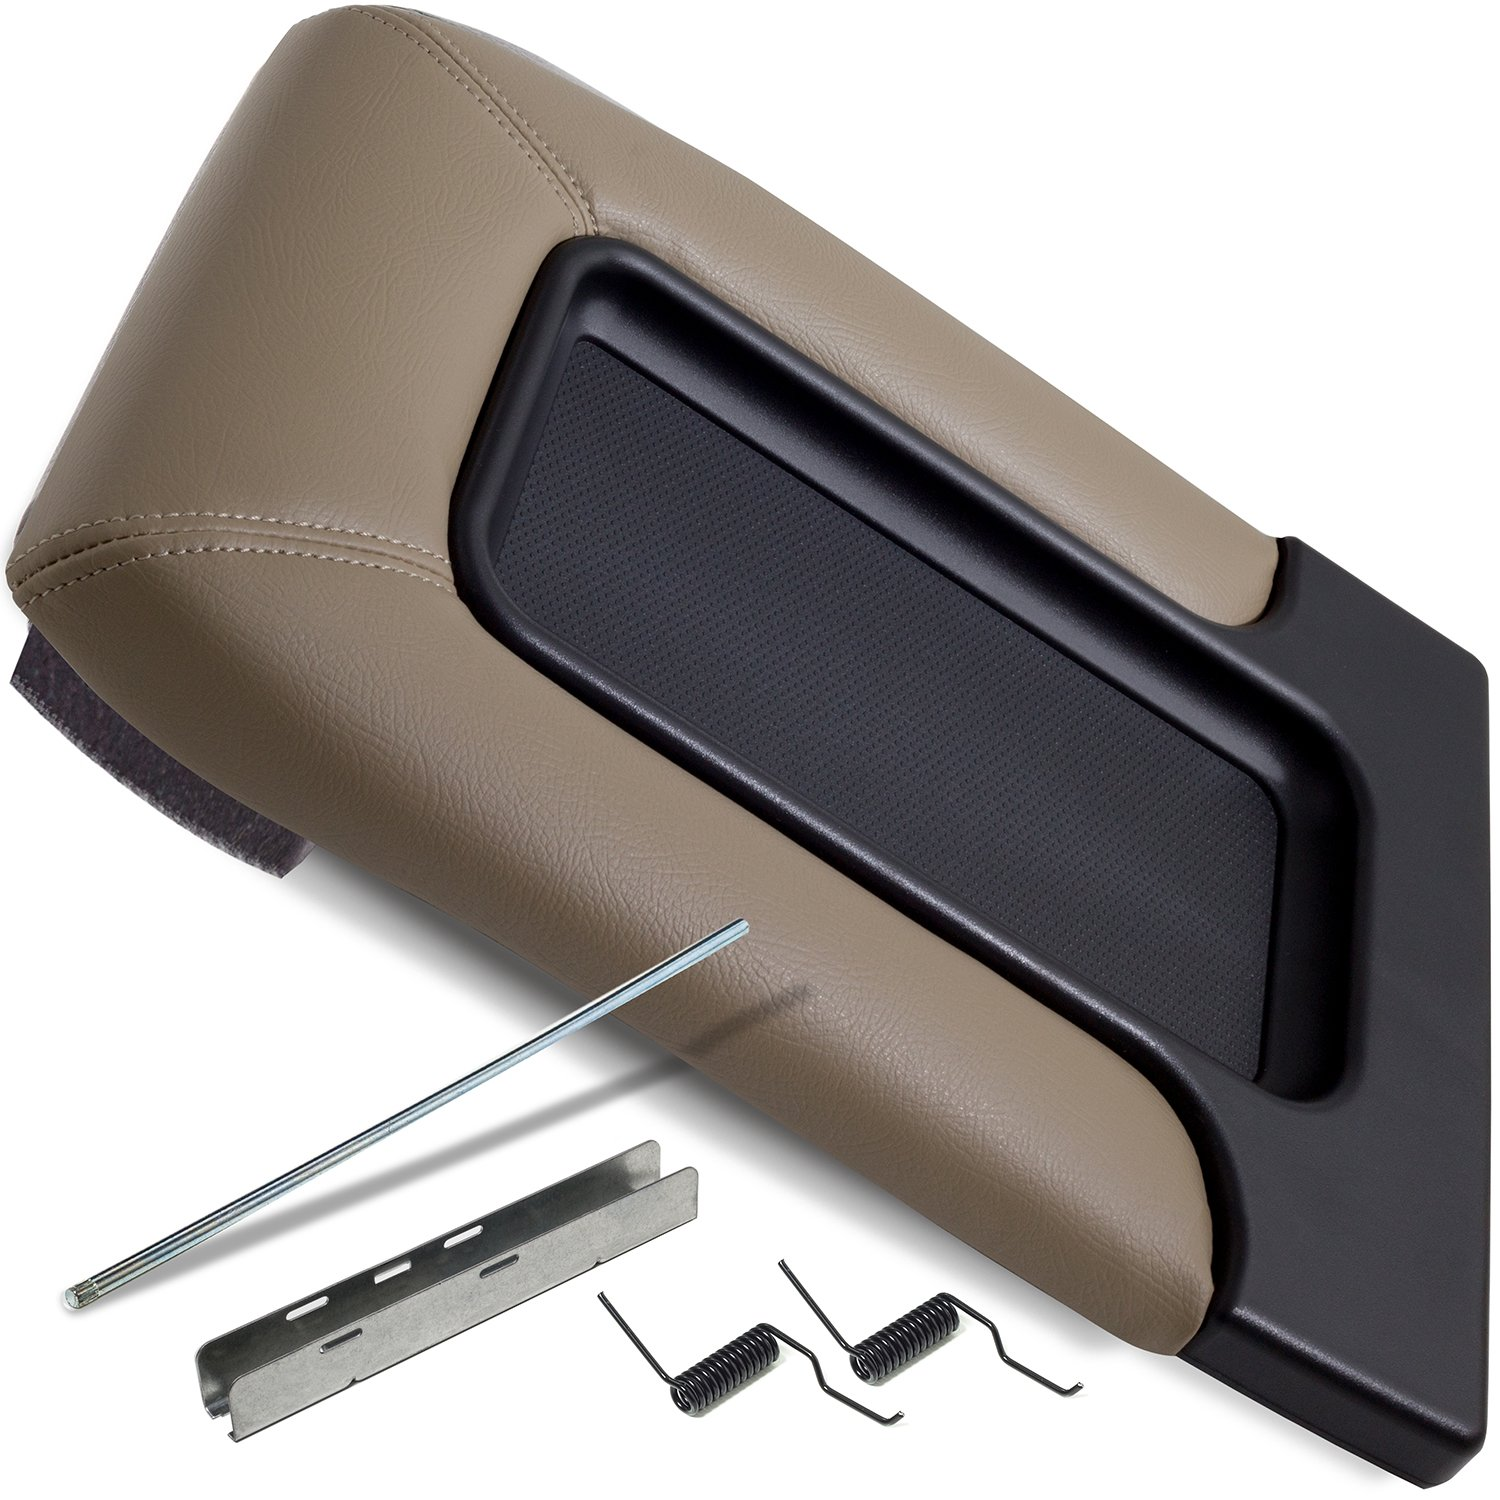 Center Console Lid Replacement Cover - 99-07 Chevy Silverado Tahoe Avalanche Suburban GMC Sierra Yukon Escalade Truck Accessories Best for Chevrolet Consoles Organizer Armrest Latch Replaces 19127366